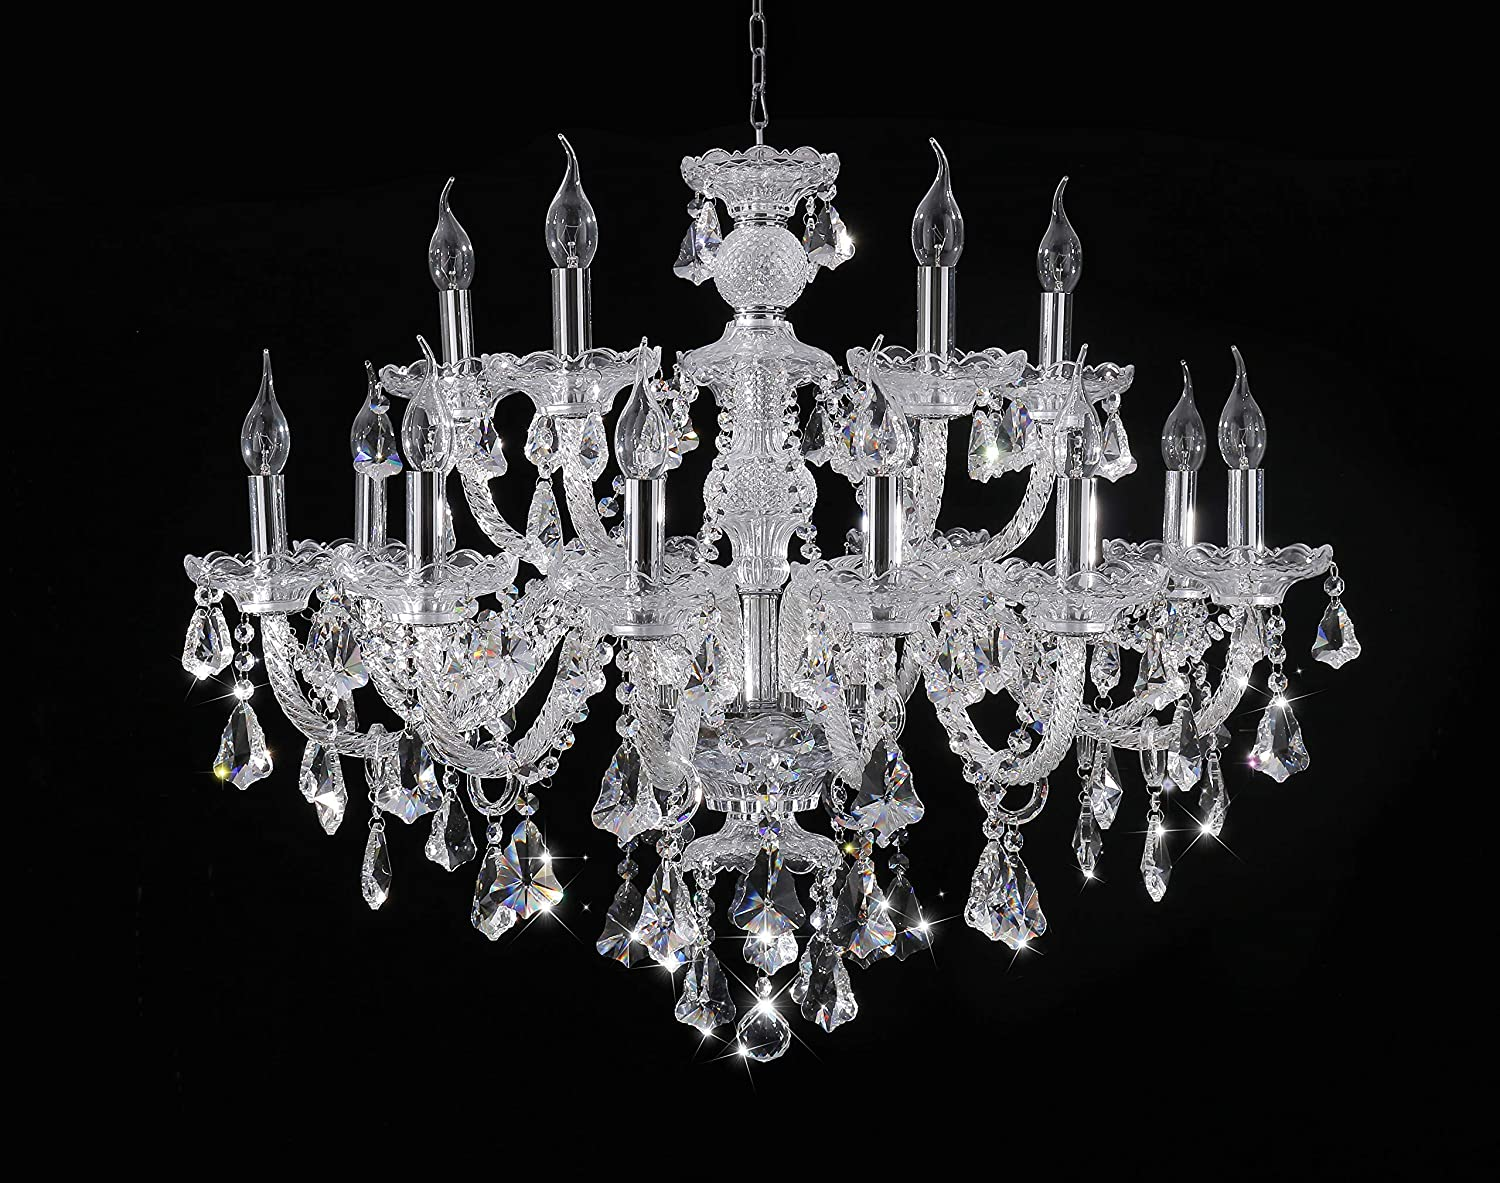 Clear 15 Lights K9 Crystal Chandelier Modern Luxurious Light Candle Pendant Lamp Ceiling Living Room Lighting for Dining Living Room Bedroom Hallway Entry 32×35 Inch Gifts Color Clear